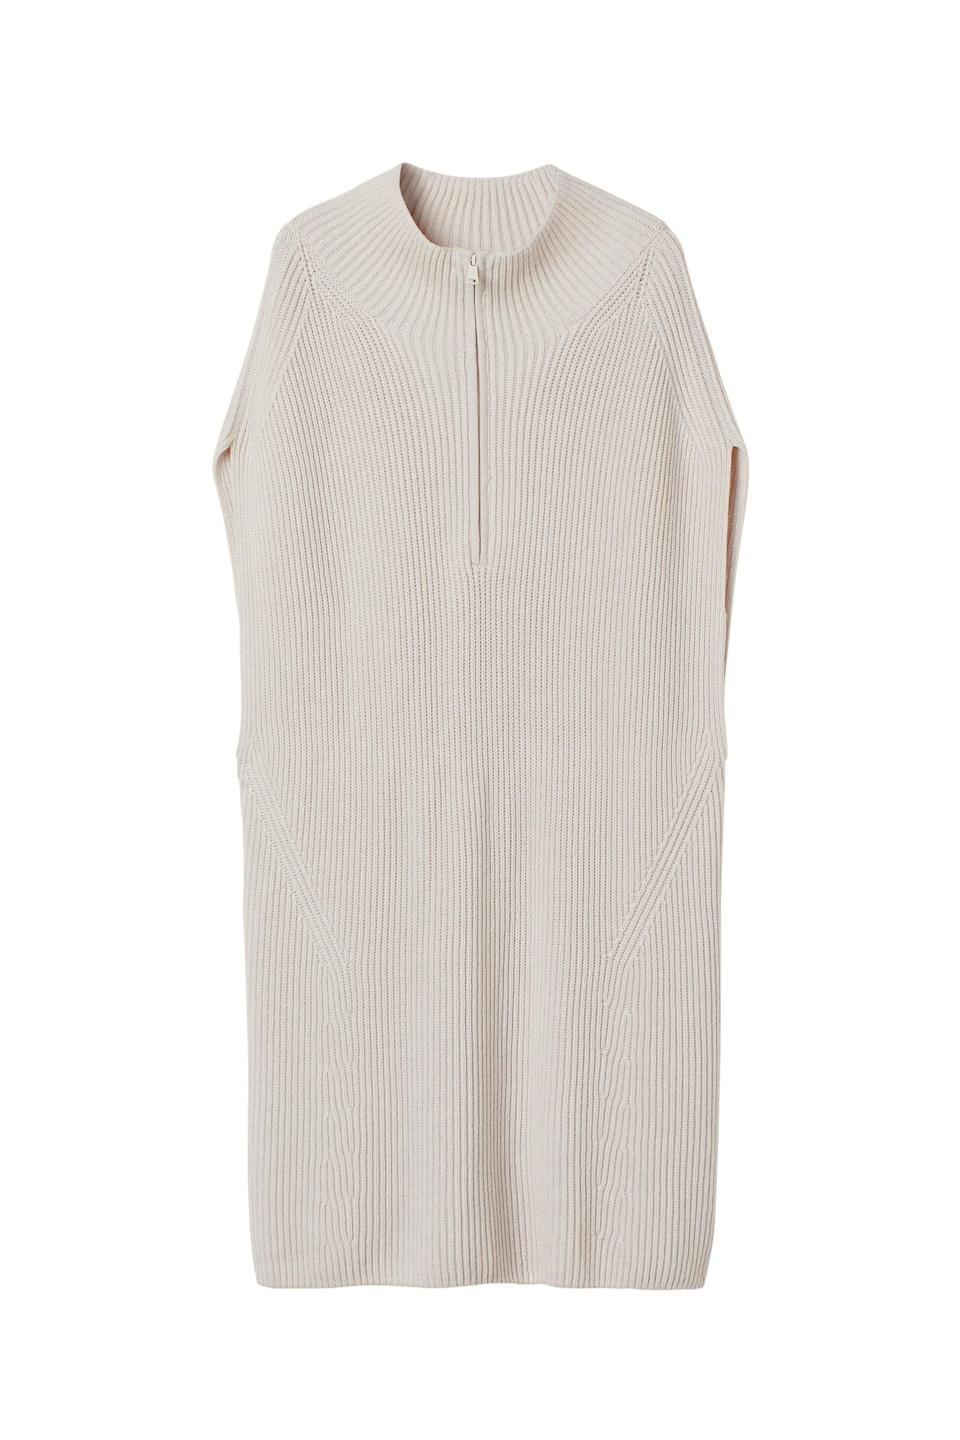 """<br><br><strong>H&M</strong> Rib-Knit Wool-Blend Dress, $, available at <a href=""""https://go.skimresources.com/?id=30283X879131&url=https%3A%2F%2Fwww2.hm.com%2Fen_us%2Fproductpage.1014092002.html"""" rel=""""nofollow noopener"""" target=""""_blank"""" data-ylk=""""slk:H&M"""" class=""""link rapid-noclick-resp"""">H&M</a>"""